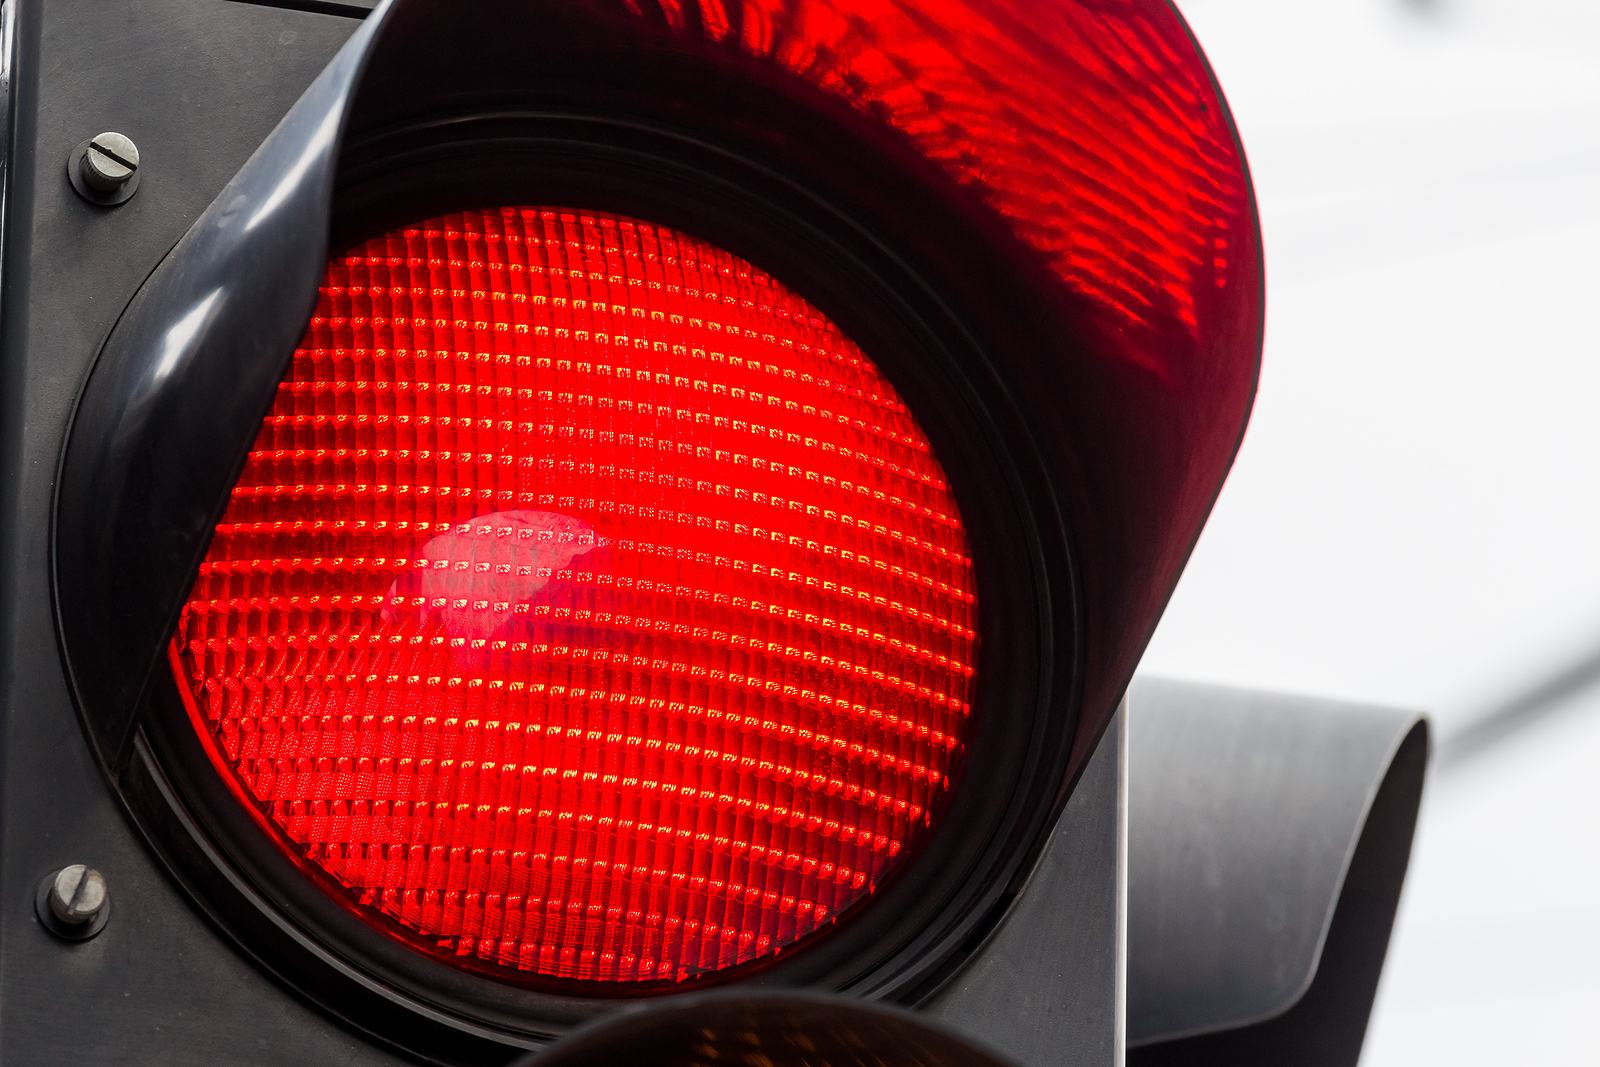 Red Traffic Light - Another Update to the New Jersey Red Light Camera Mess